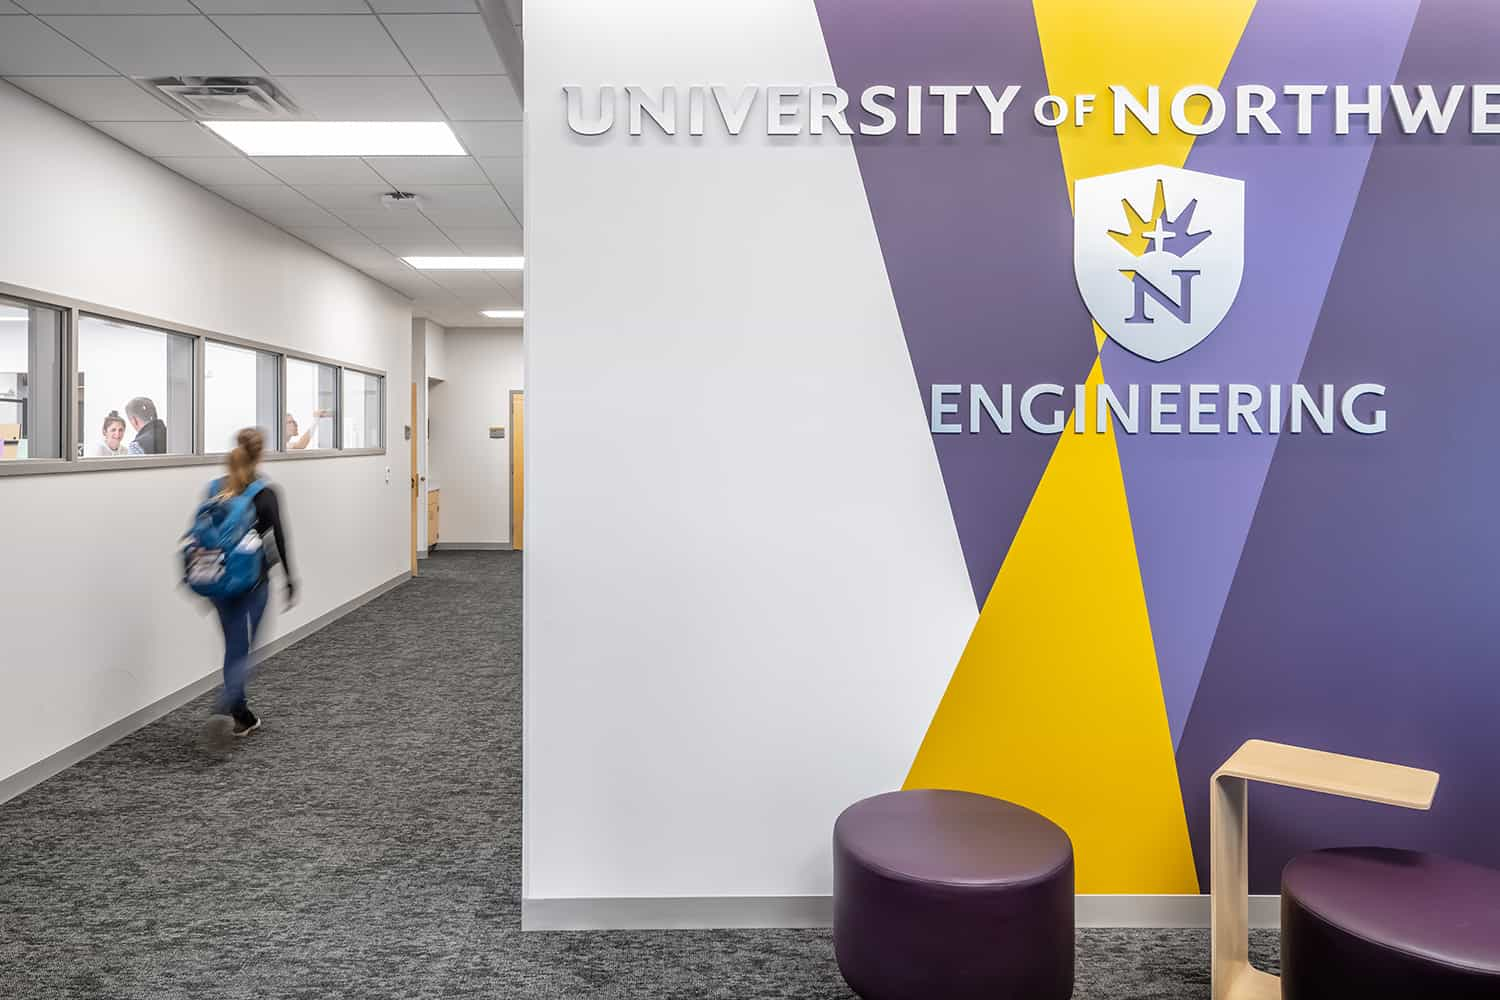 Branded entry space into the engineering facility.